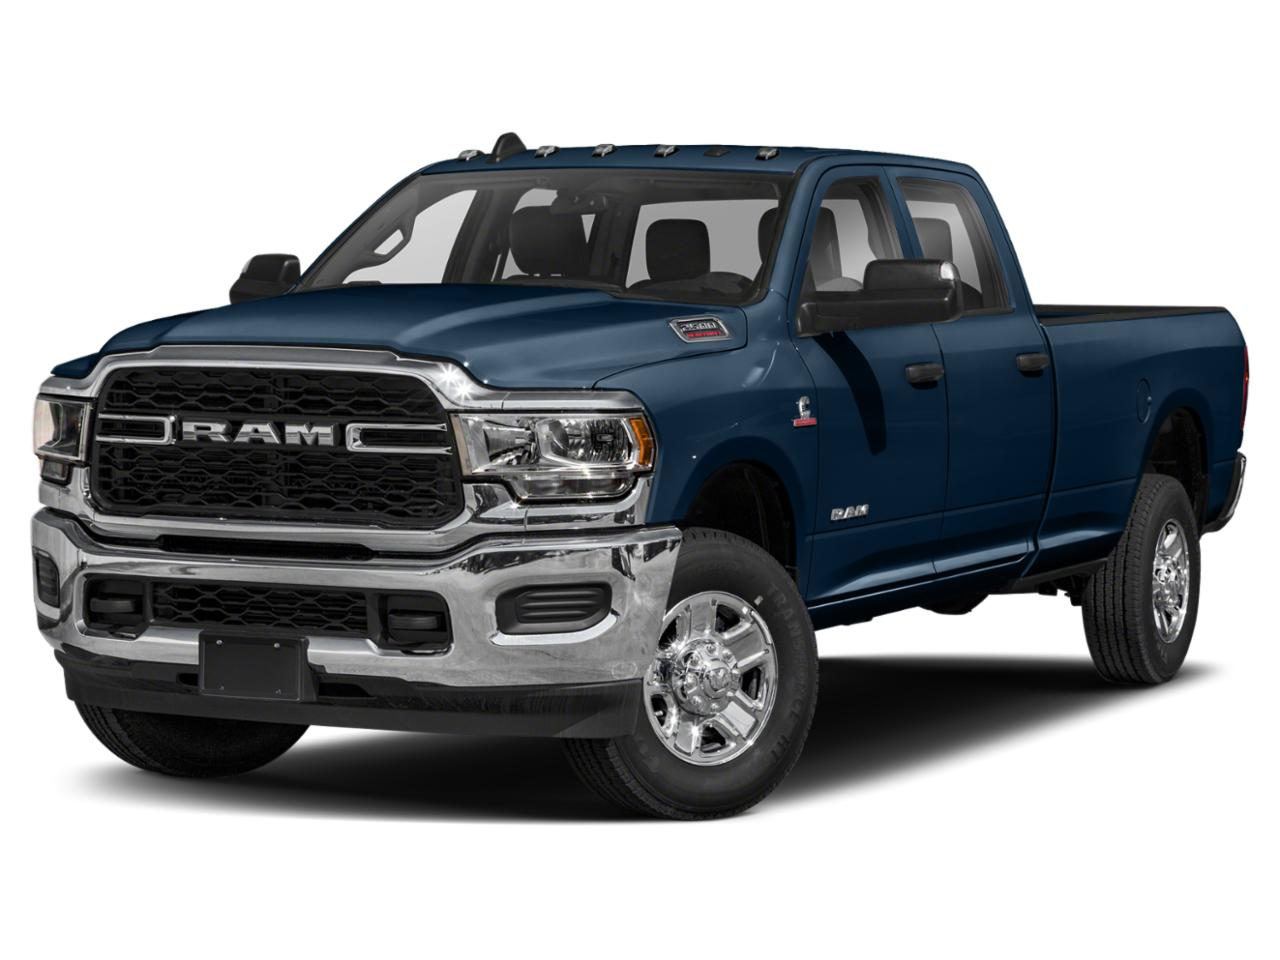 2020 Ram 2500 LIMITED Crew Cab Pickup Slide